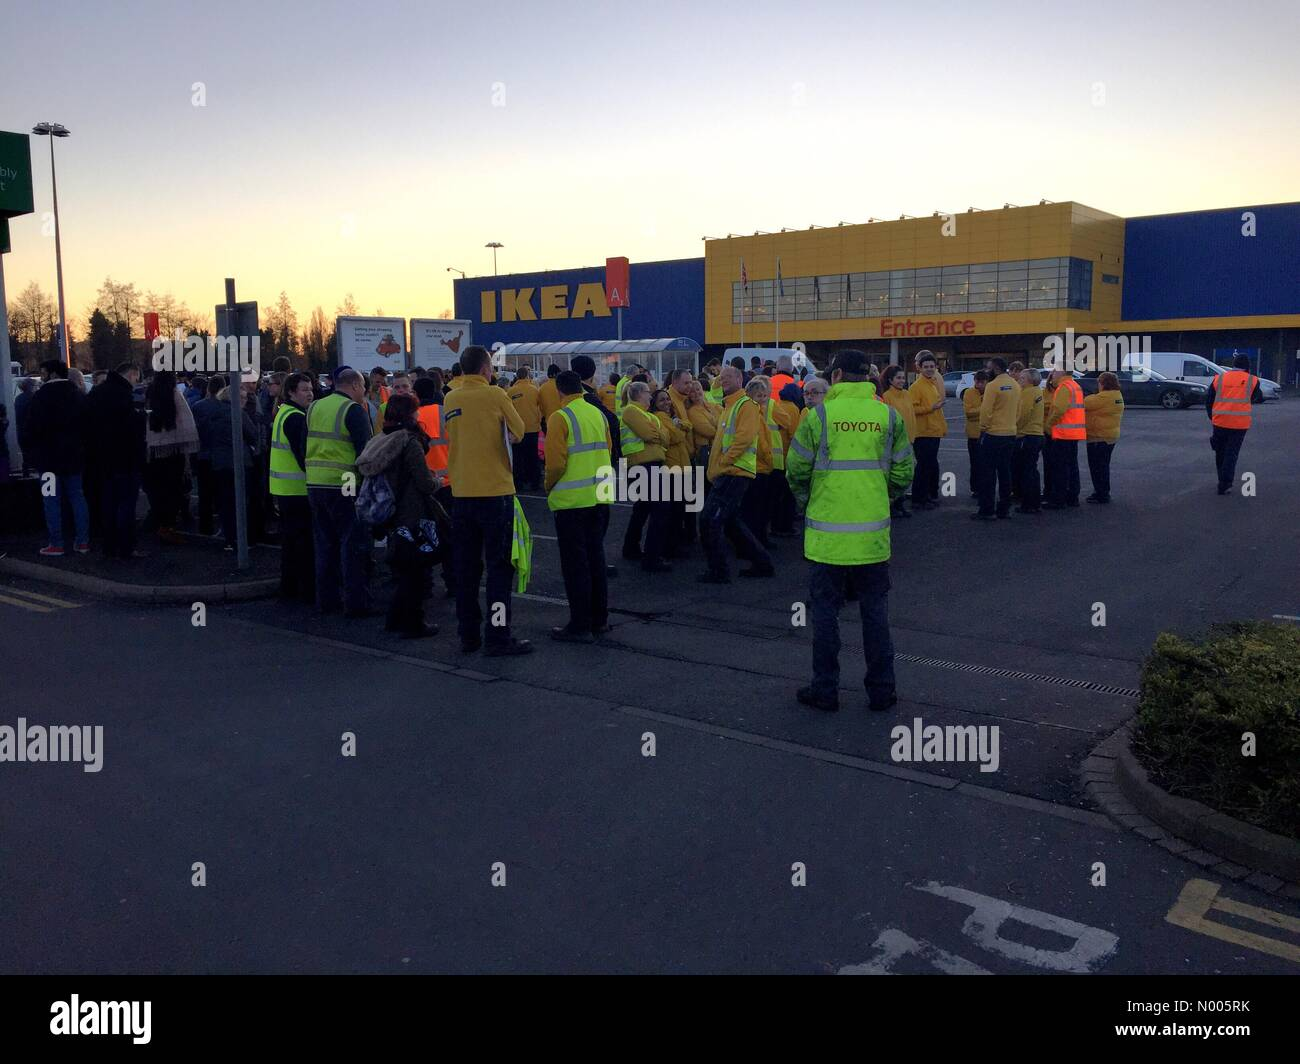 IKEA evacuated. Staff stand outside IKEA, Birmingham after the store was evacuated following a strong smell of burning. - Stock Image